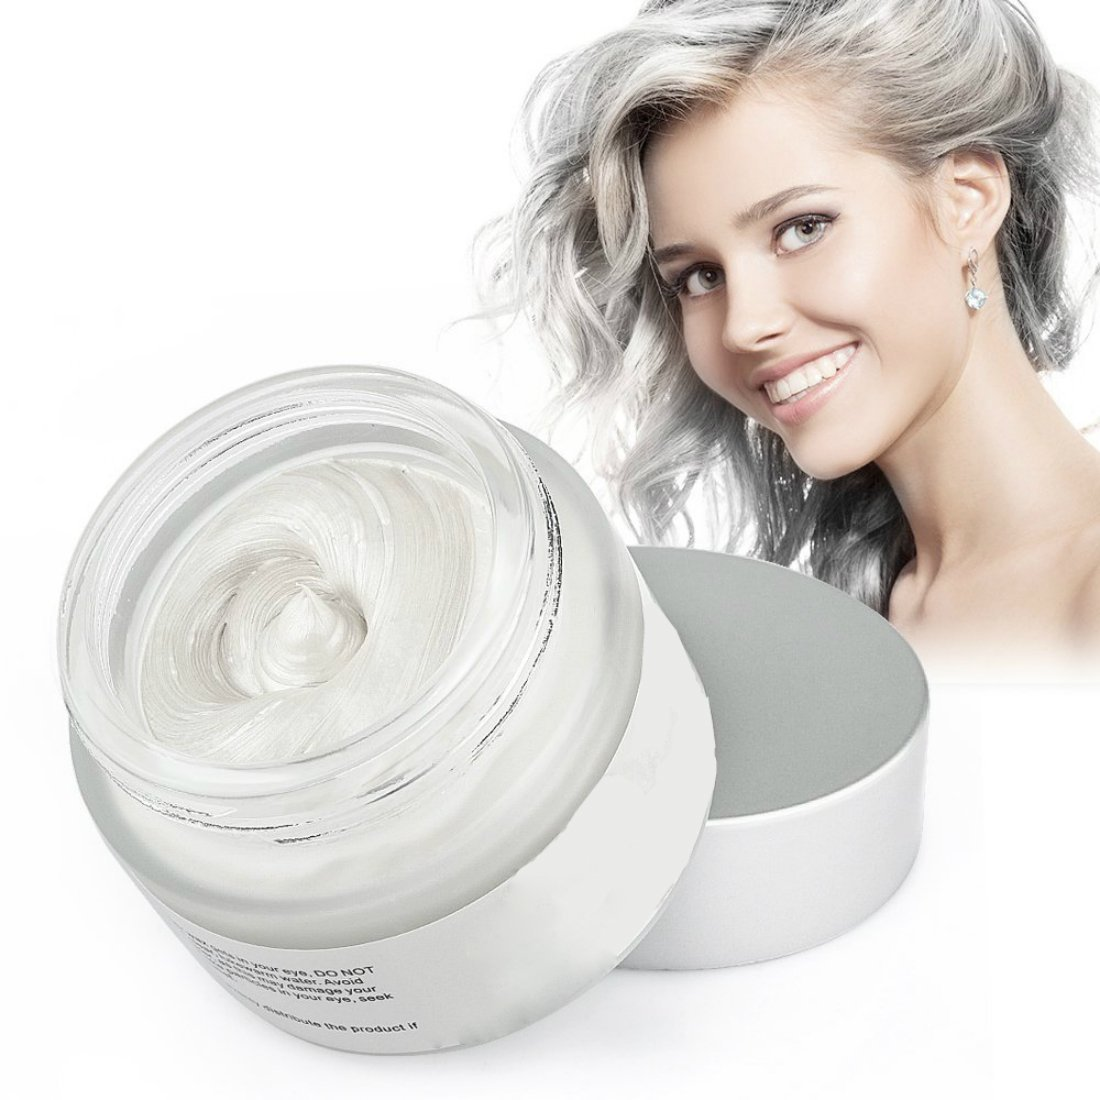 Mofajang Hair Wax Color Dye Styling Cream Mud Natural Hairstyle Pomade Washable Temporary (White)